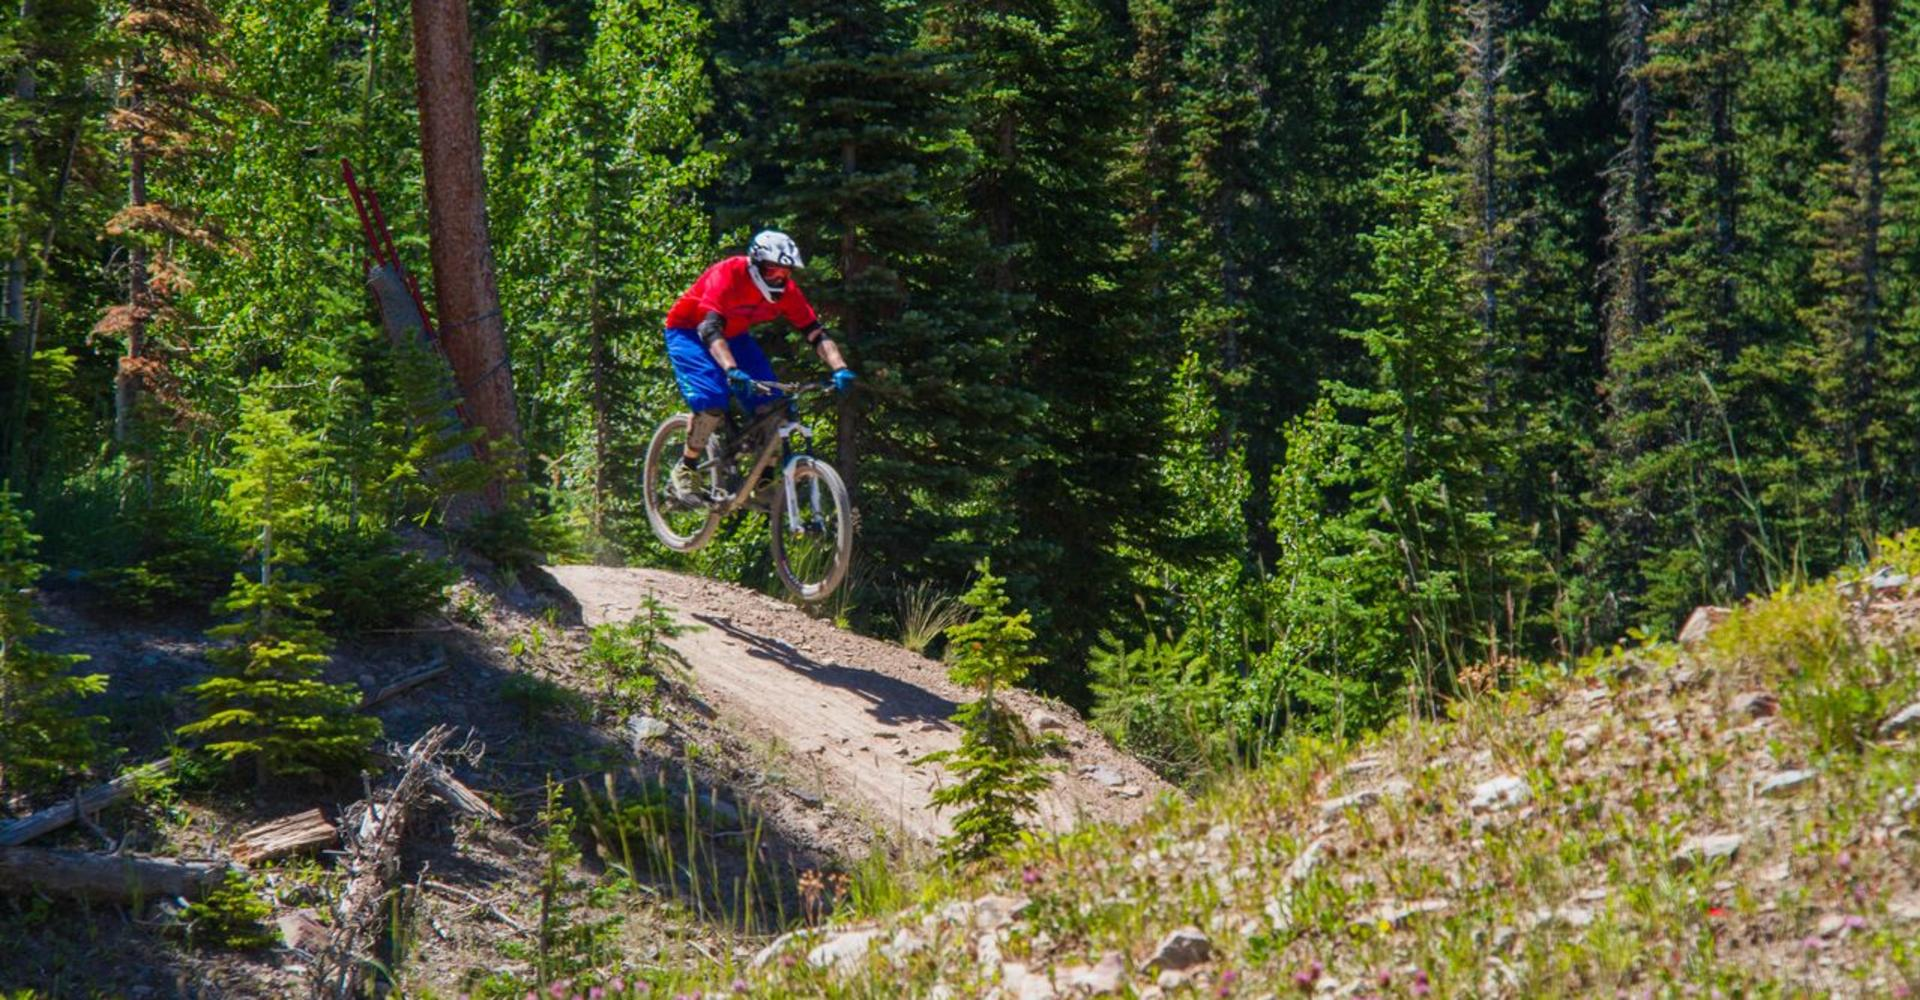 ad207131930 Bike trails in Aspen range from mild-mannered and smooth pavement to rocky  and extreme lift-accessed downhill trails. Mountain bikers will find  hundreds of ...